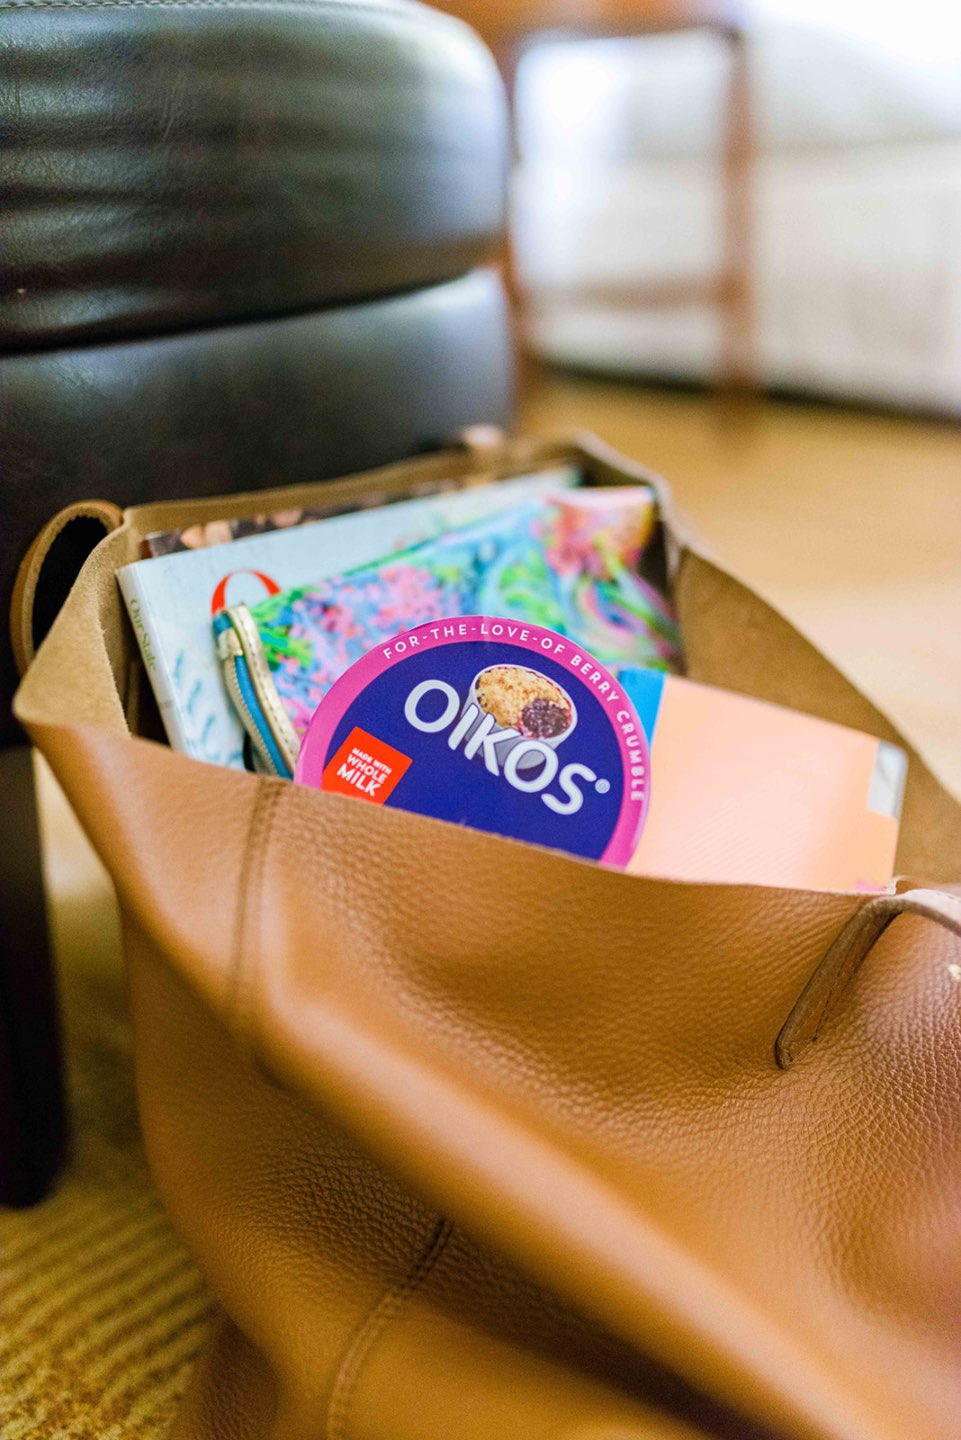 A Quick Dessert Idea that Will Satisfy your Cravings - I'm Fixin' To - @mbg0112 | Oikos, a quick desert idea that will satisfy your sweet cravings, featured by top US lifestyle blog, I'm Fixin To: image of an Oikos yogurt in a woman's handbag